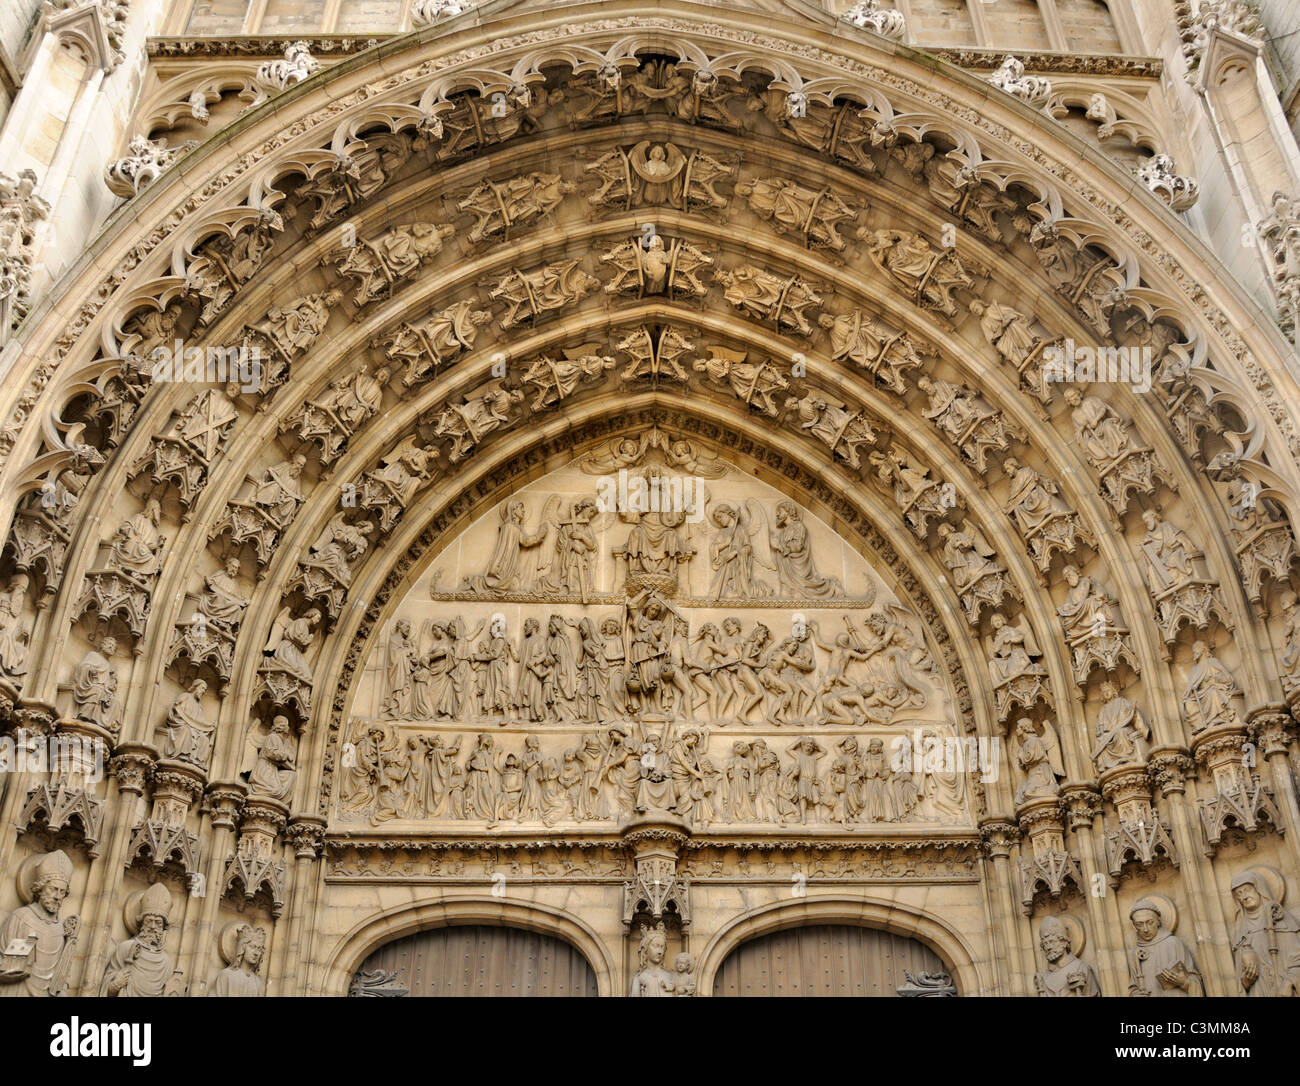 Antwerp / Antwerpen, Belgium. Cathedral (Onze-Lieve-Vrouwkathedral: 1352-1521. Gothic) Carved stone detail of Last - Stock Image